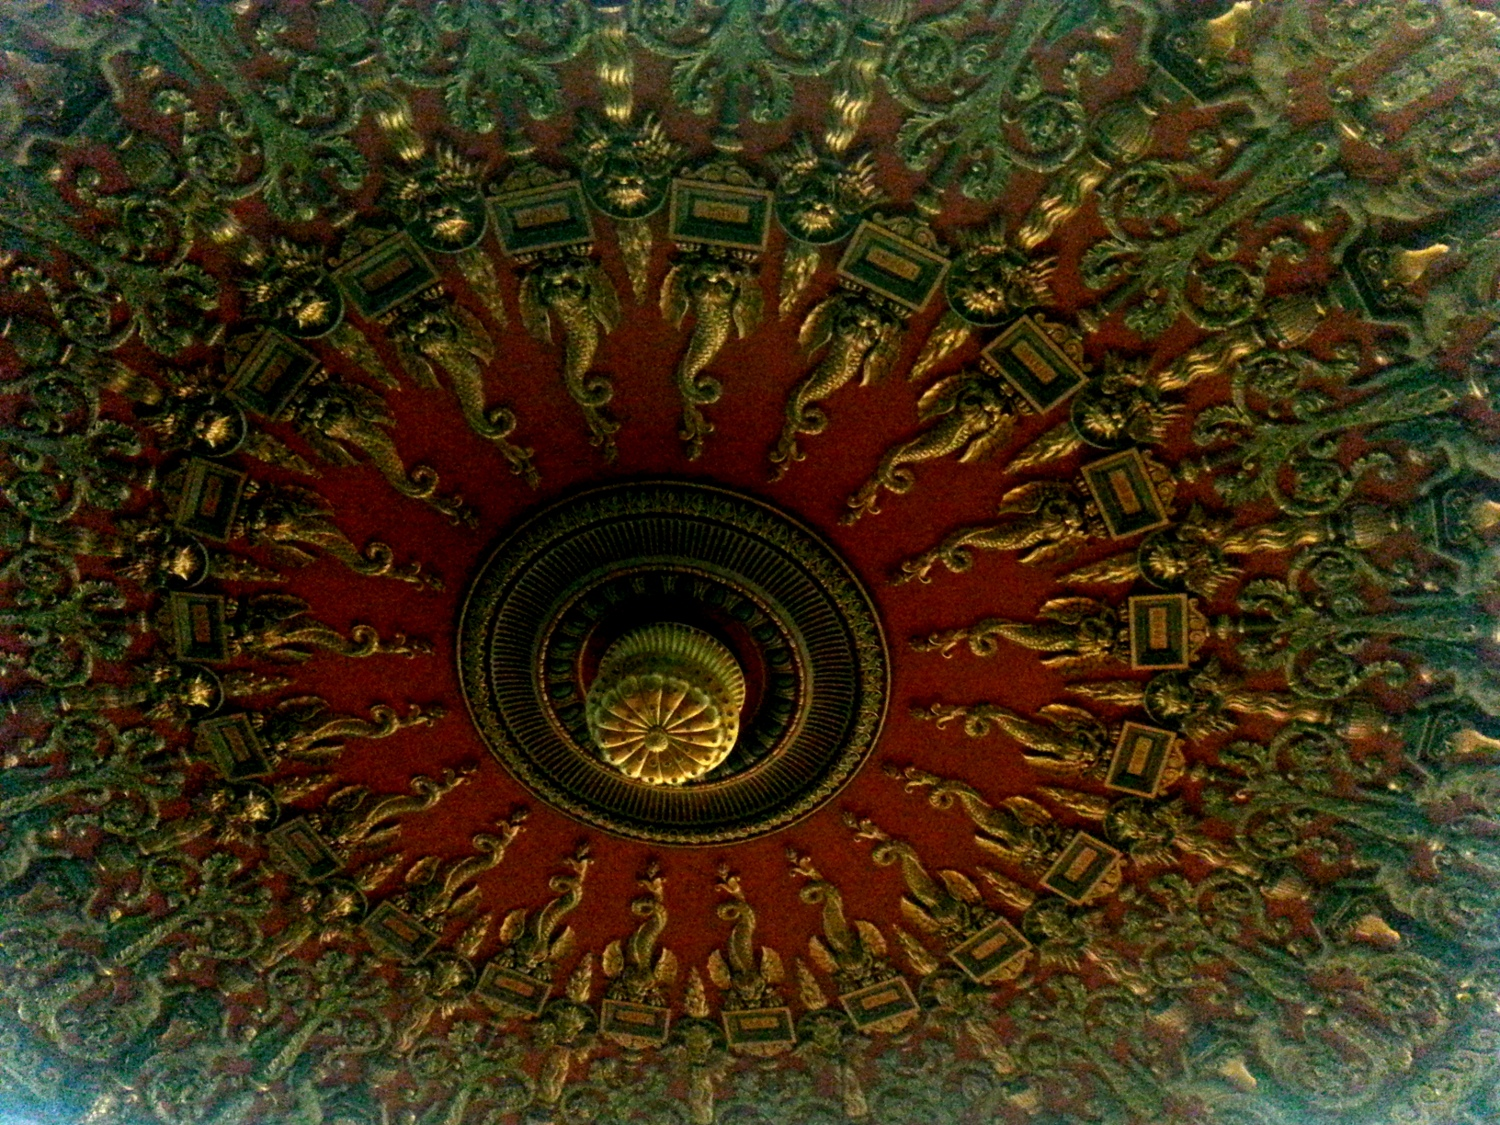 The impressive ceiling of The Romanian Athenaeum